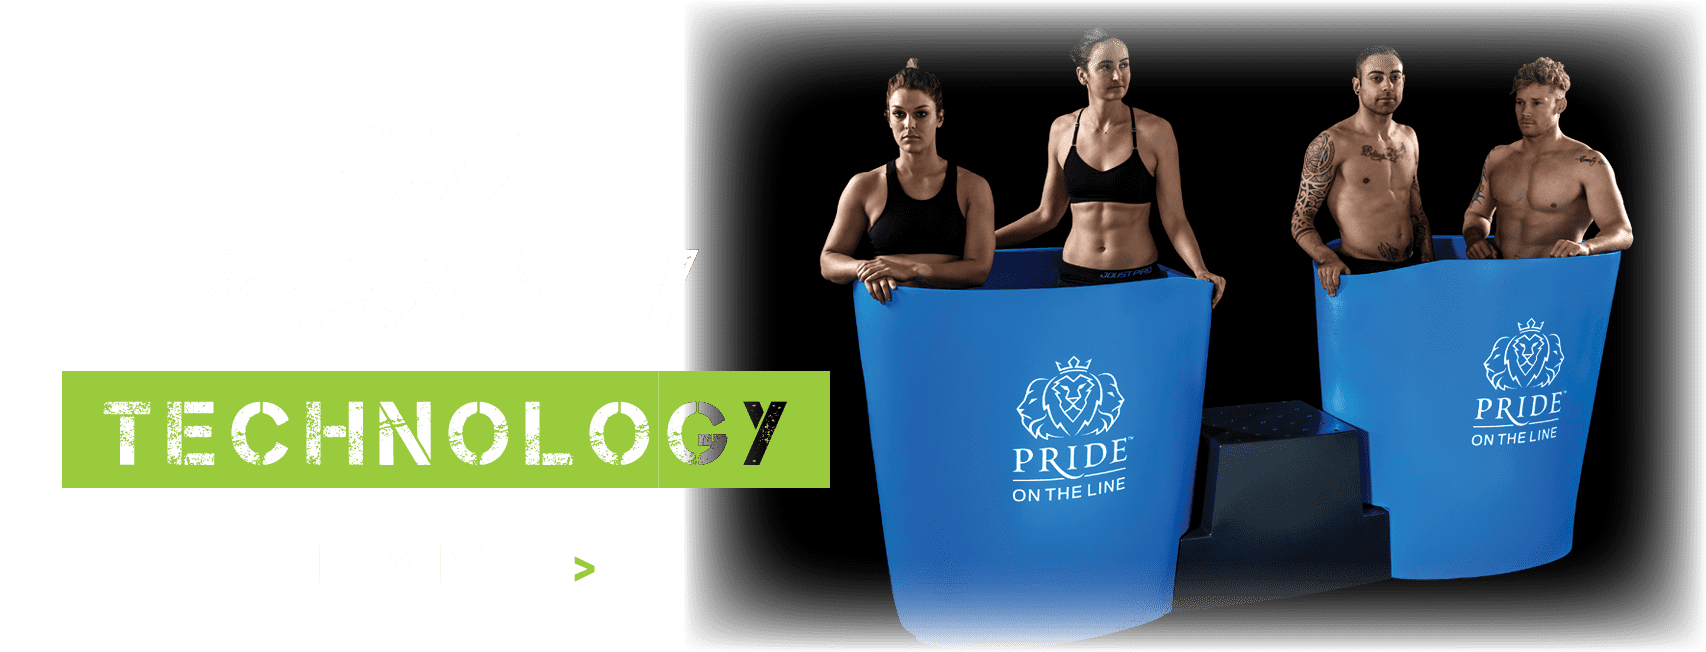 Pride on the Line Ice Baths - Recovery Technology Duo